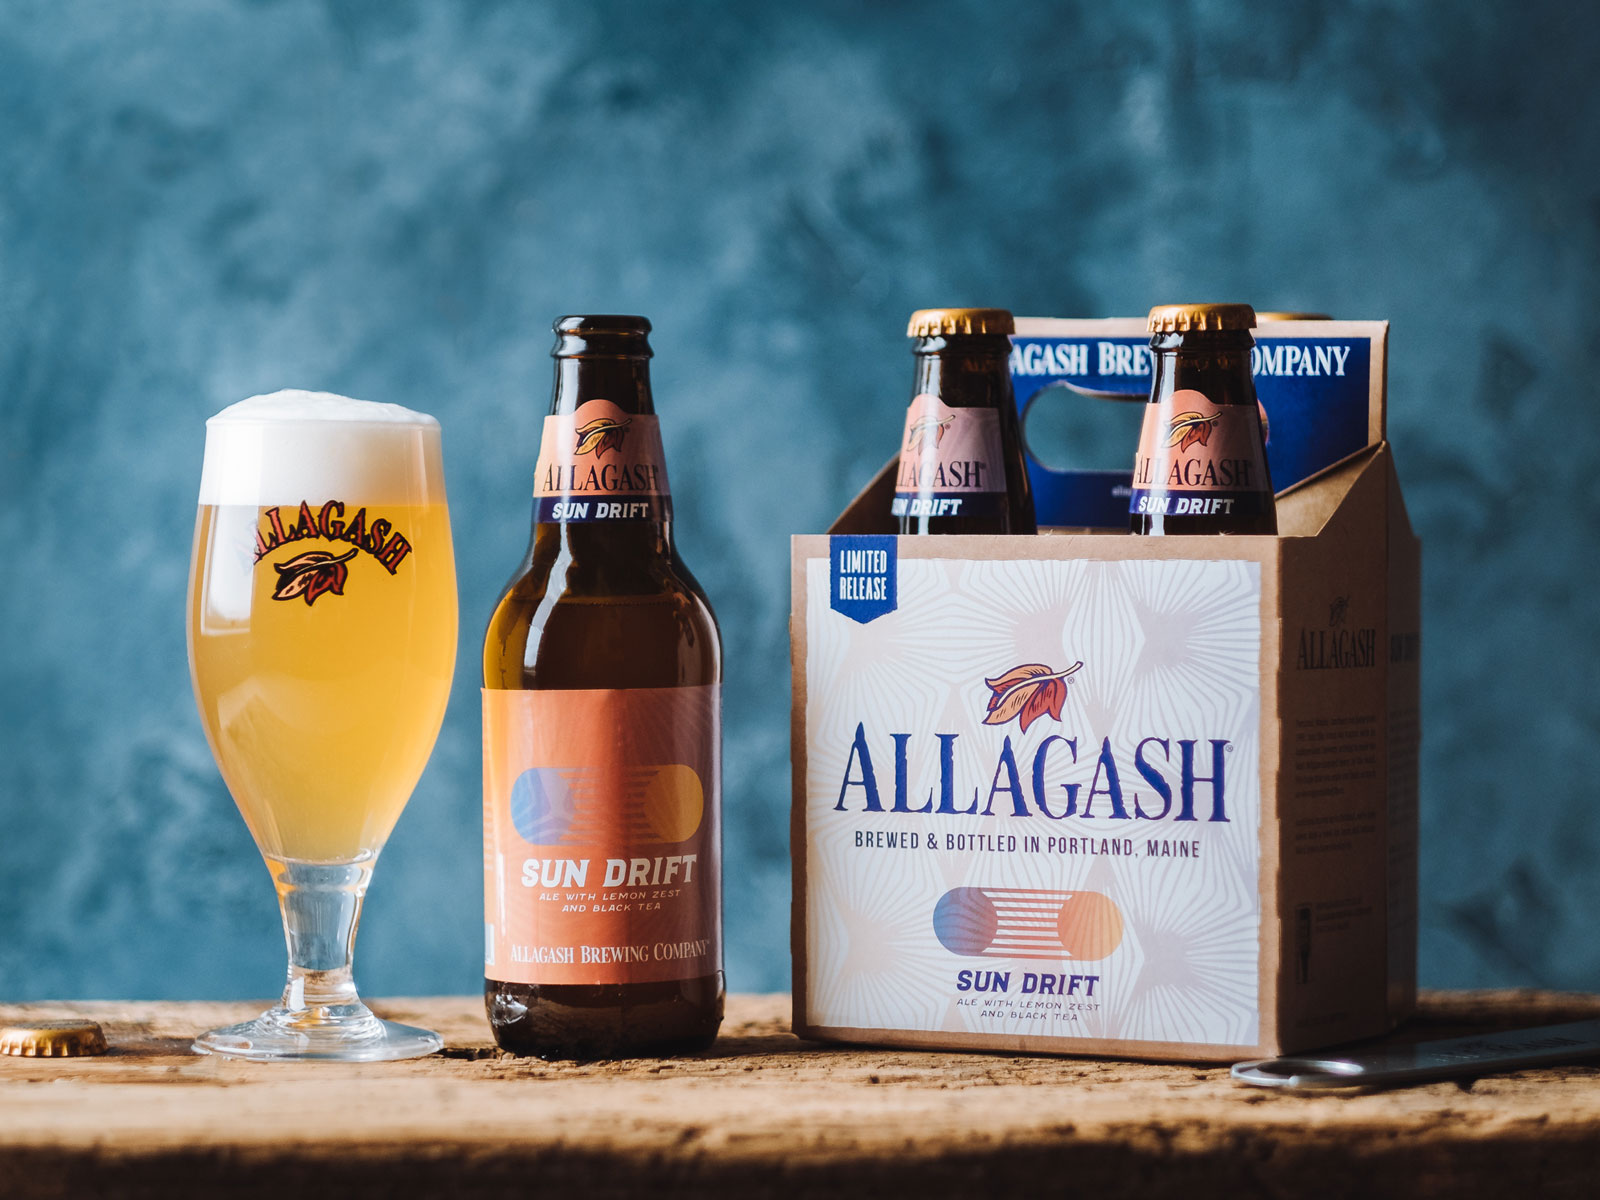 Sun Drift by Allagash